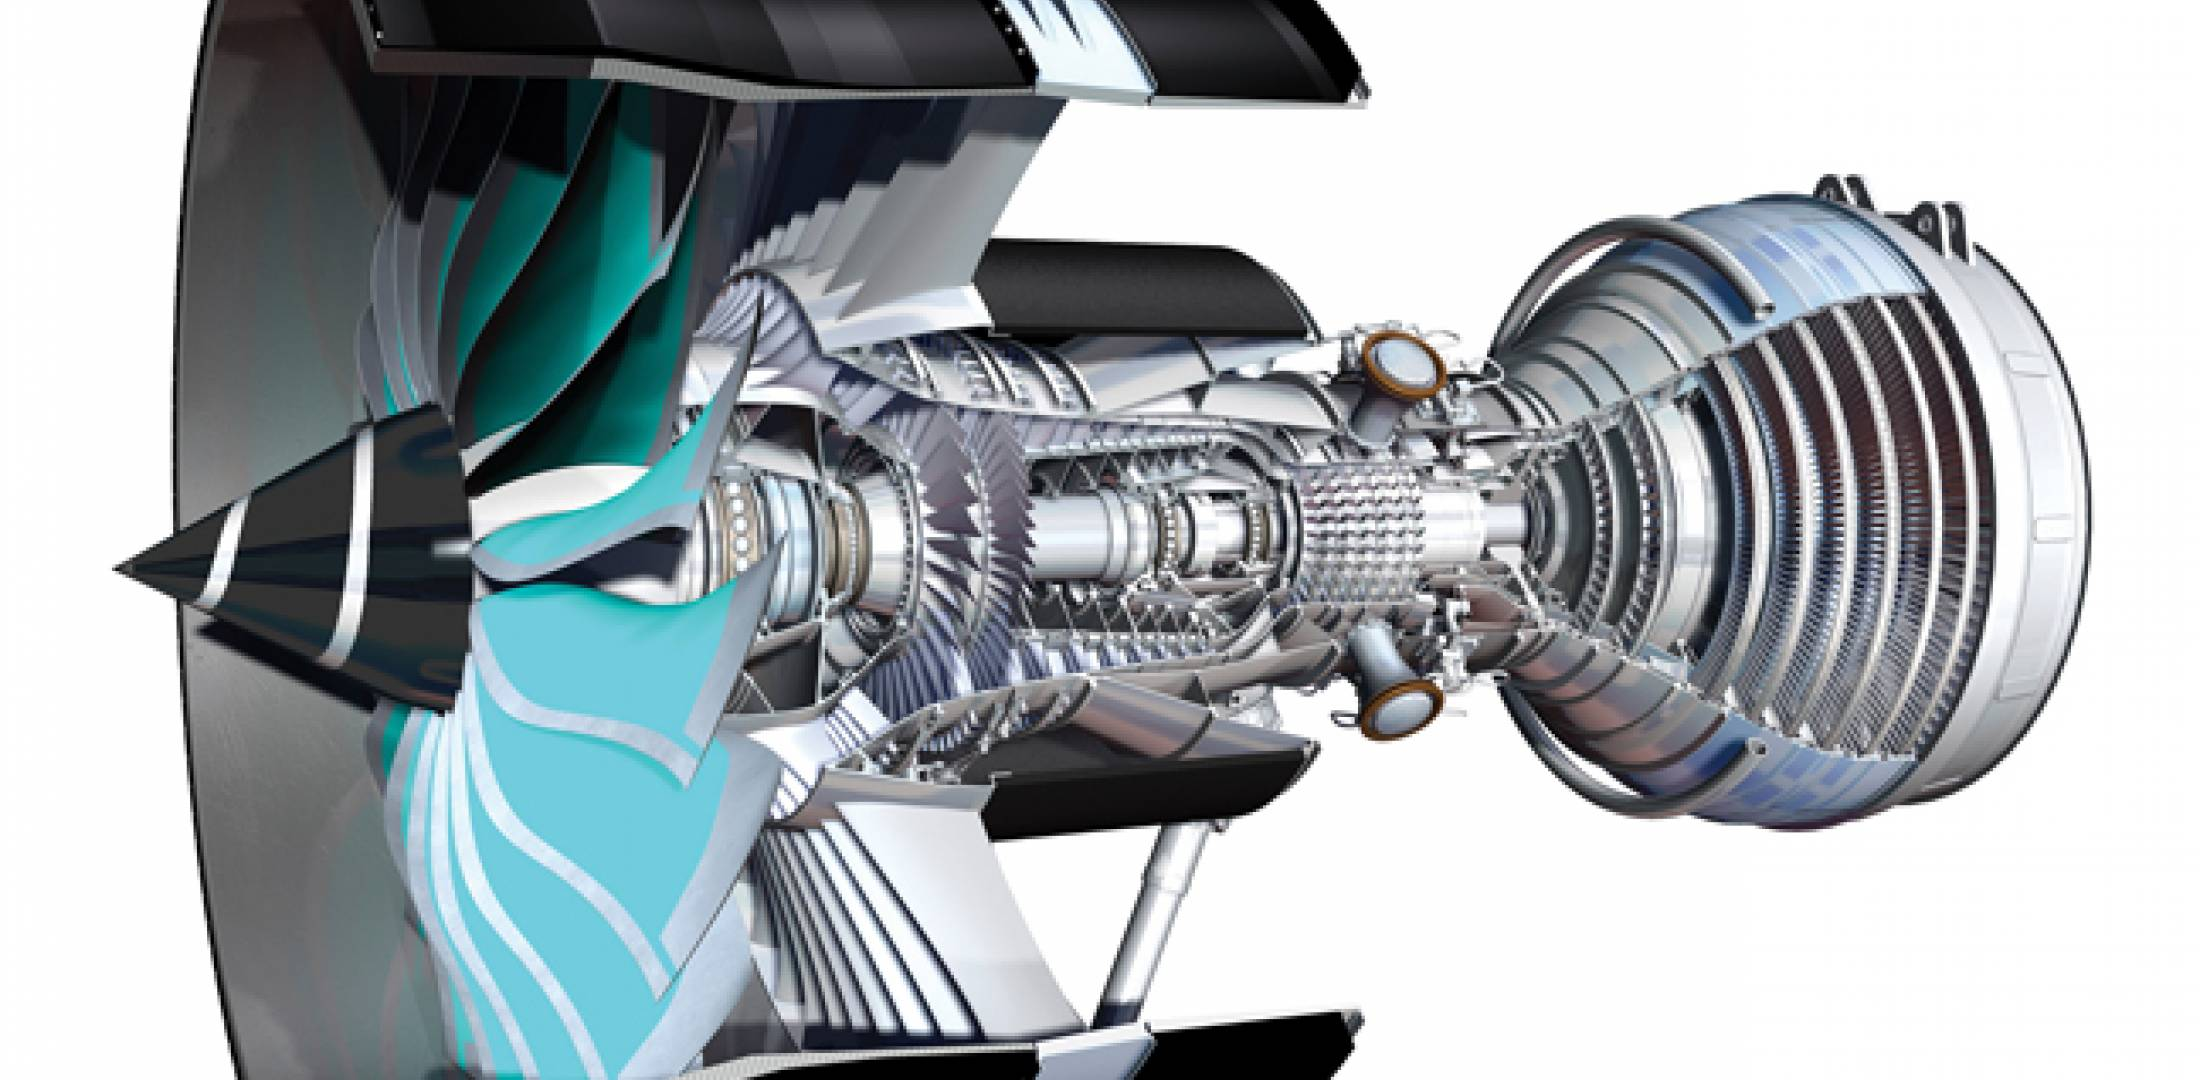 "Titanium-aluminide low-pressure turbine blades and proposed cooling arrangements on Rolls-Royce's proposed future UltraFan engine may owe much to the RB3025 powerplant unsuccessfully offered to power the Boeing 777X. For example, the RB3025 featured a ""vortex amplifier"" to simplify turbine-blade cooling with HPC air."